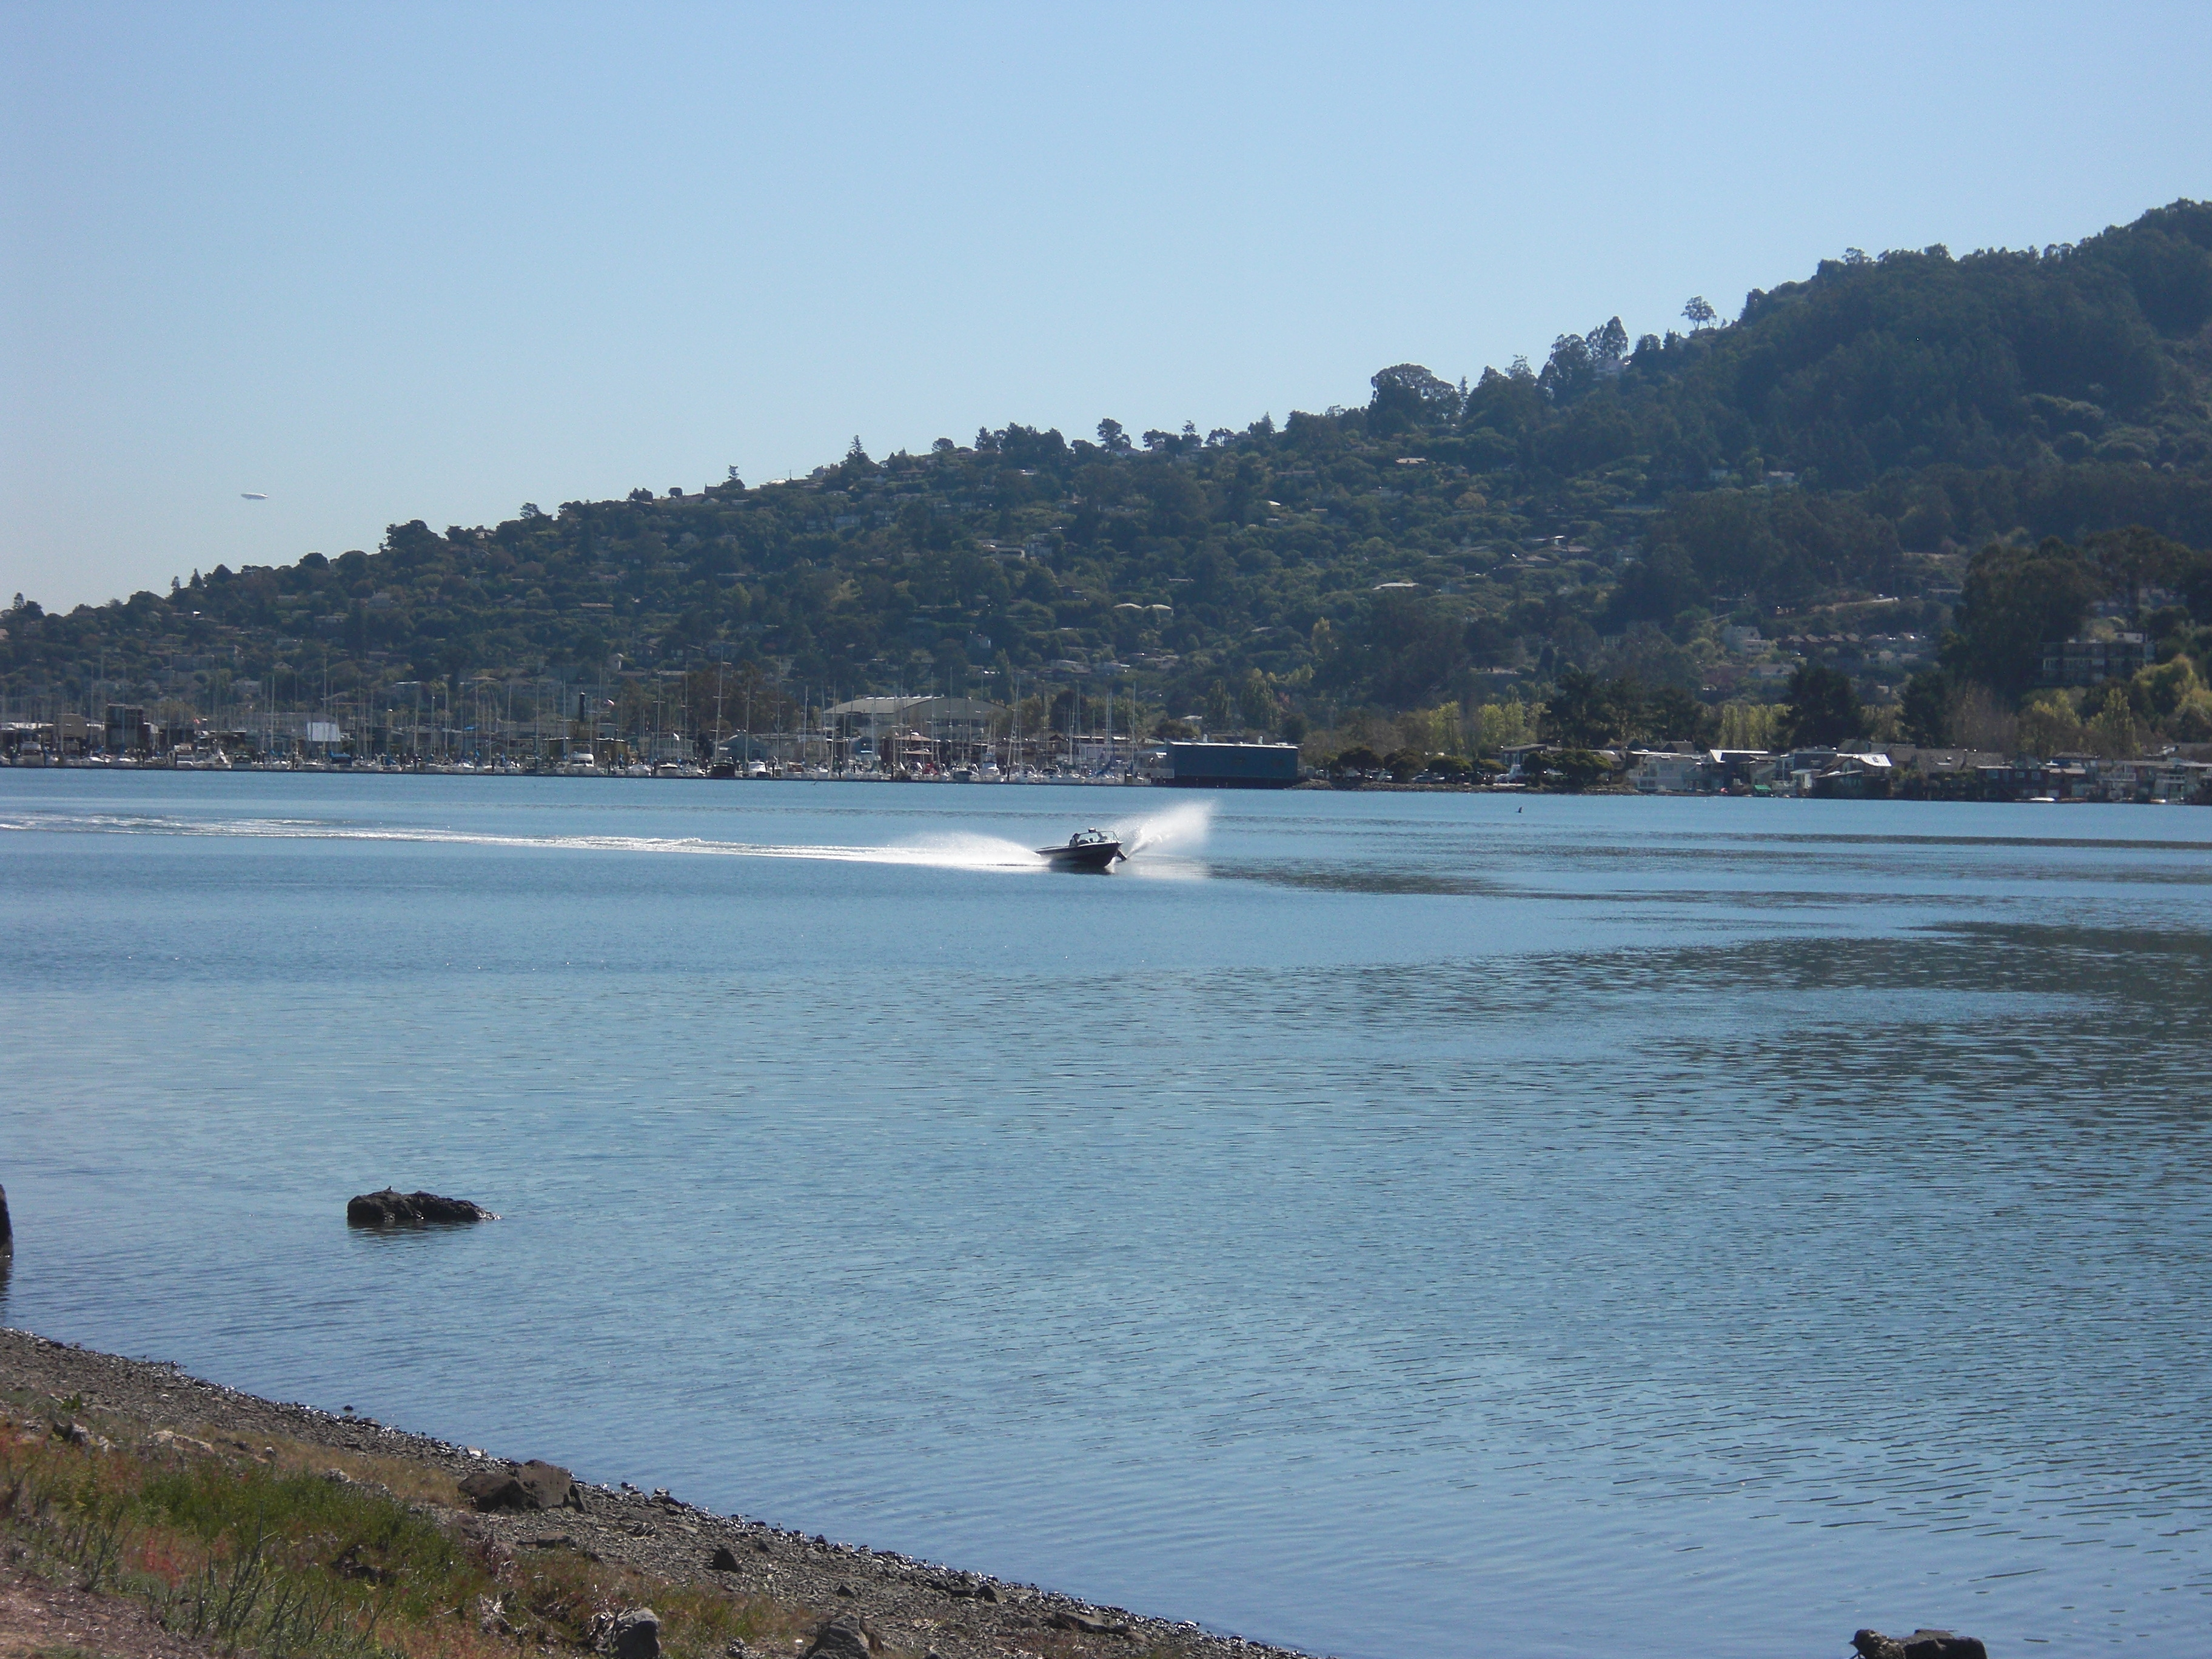 California, Water, Sports, Waterskiing, Watersports, HQ Photo